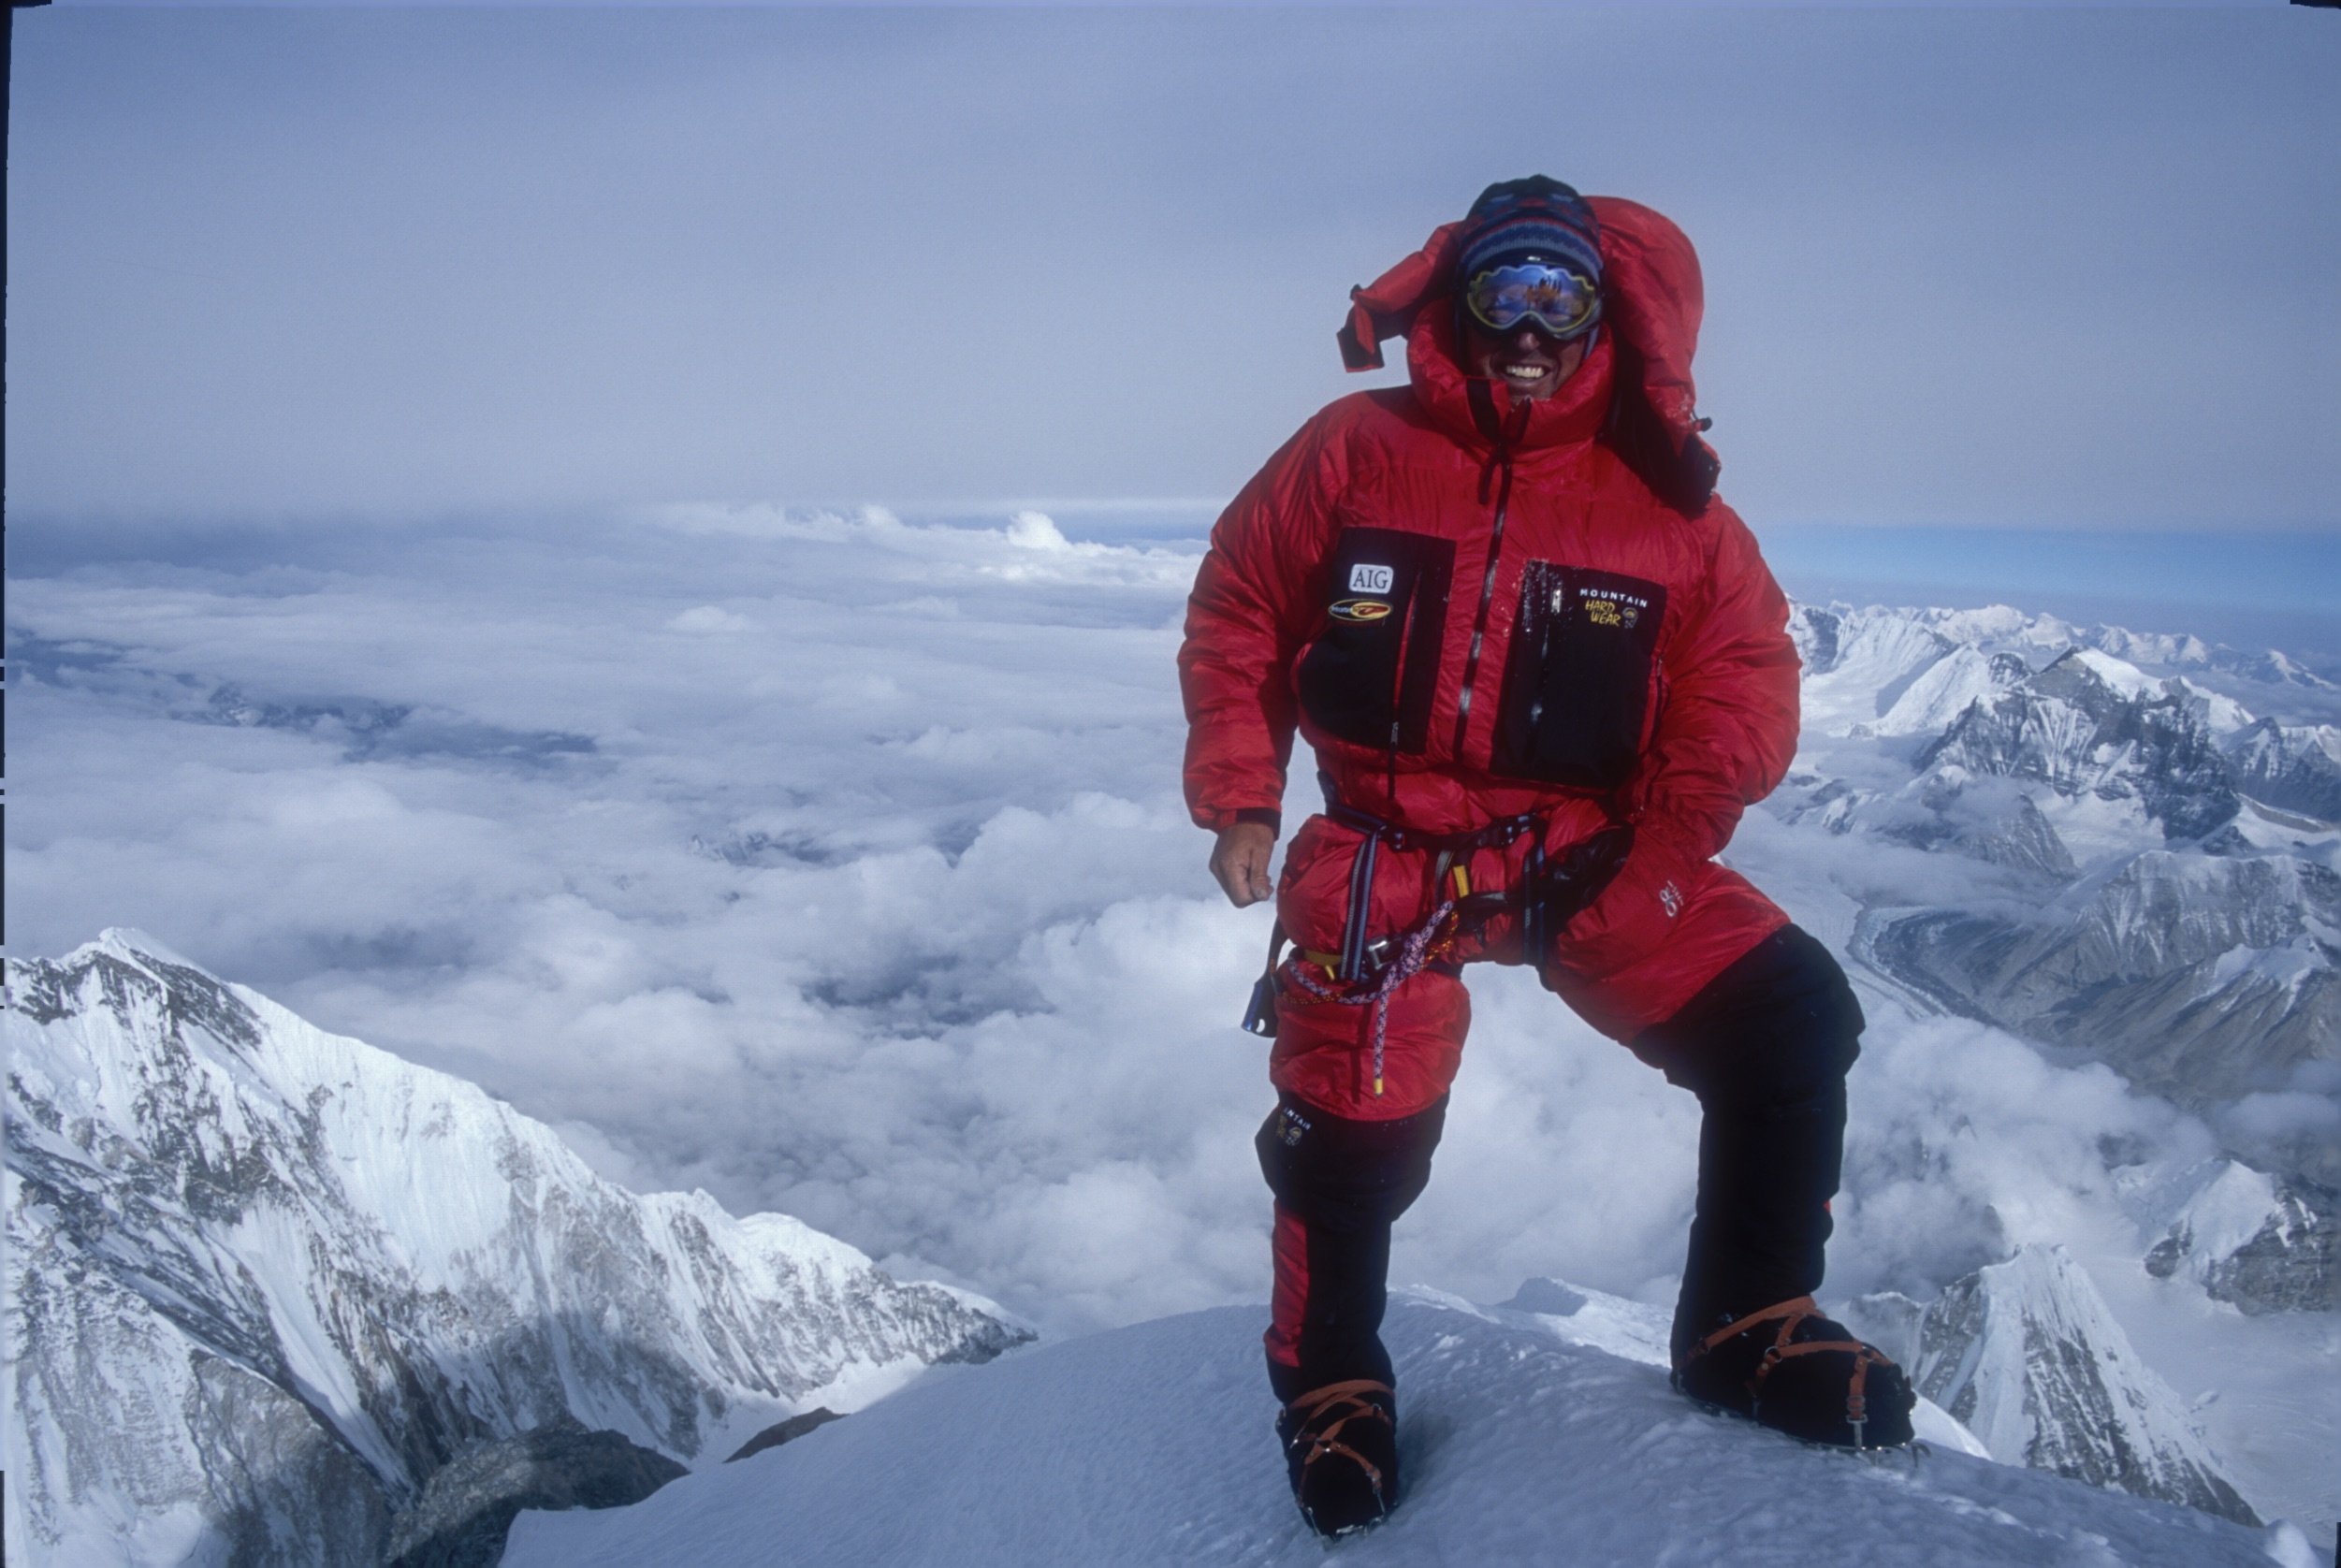 Ed Viesturs is pictured here in 2004, when he climbed Mount Everest for the sixth time.